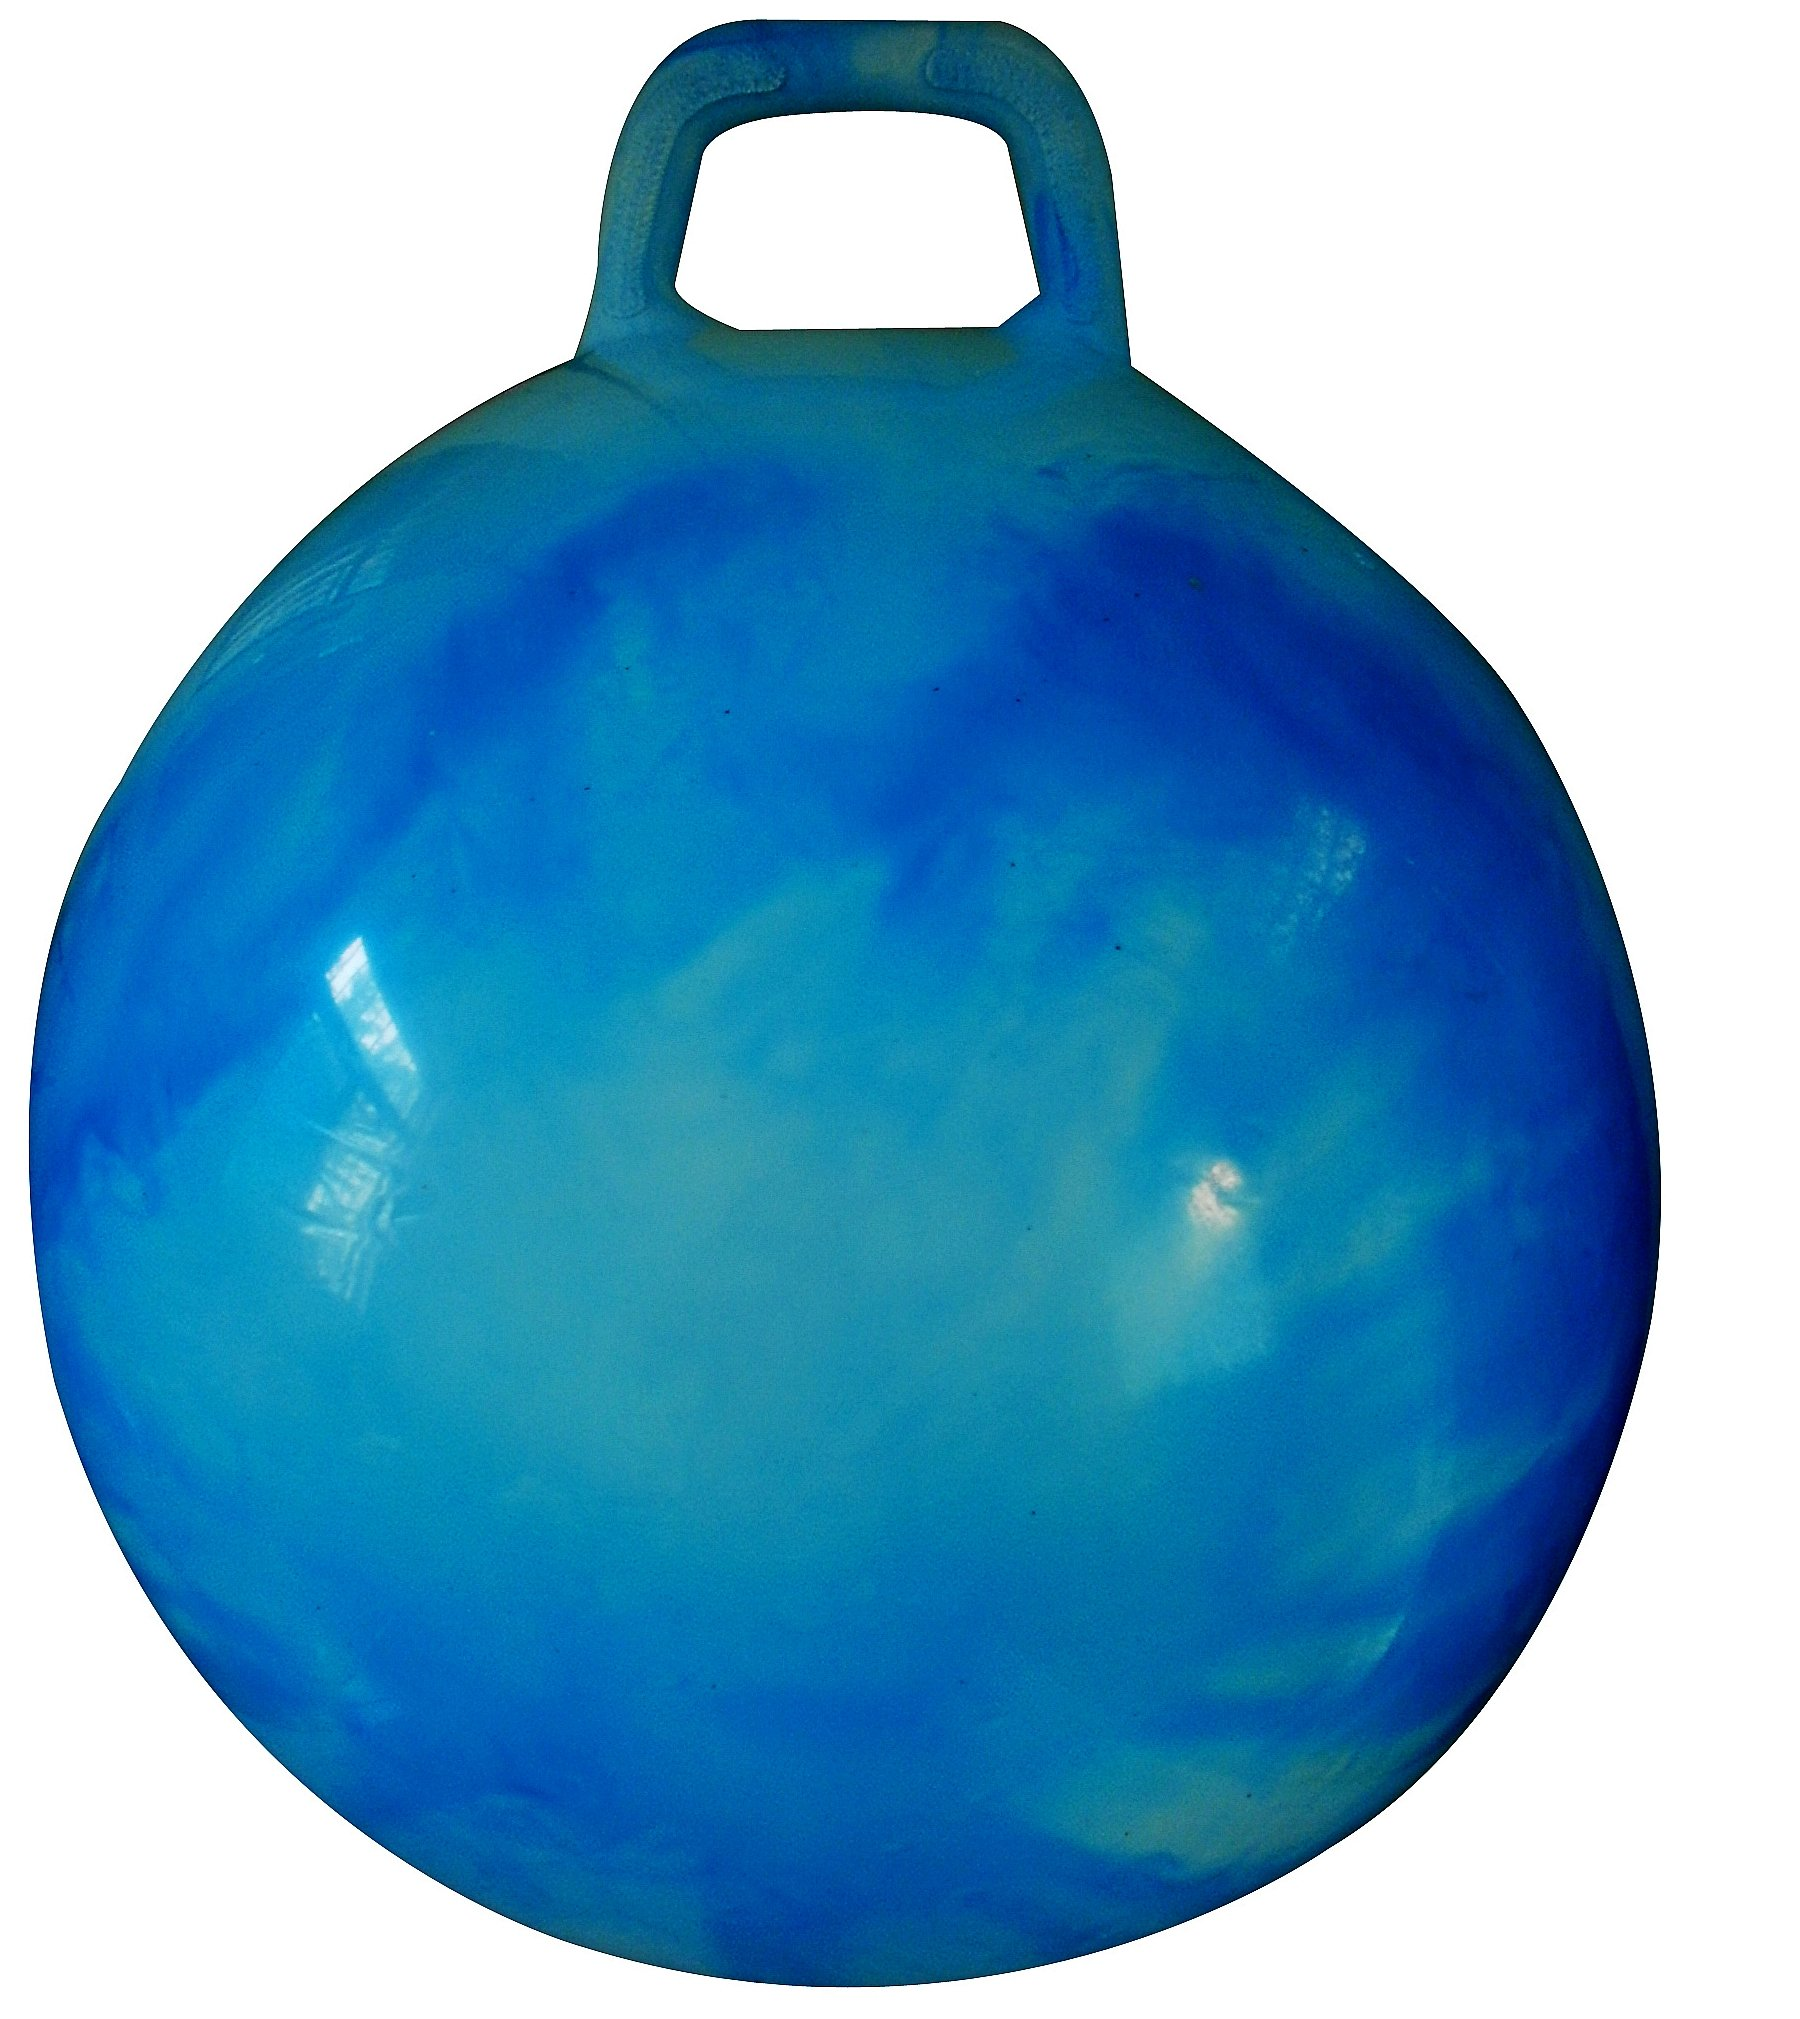 AppleRound Space Hopper Ball with Air Pump: 20in/50cm Diameter for Ages 7-9, Hop Ball, Kangaroo Bouncer, Hoppity Hop, Jumping Ball, Sit & Bounce (Blue Cloud) by AppleRound